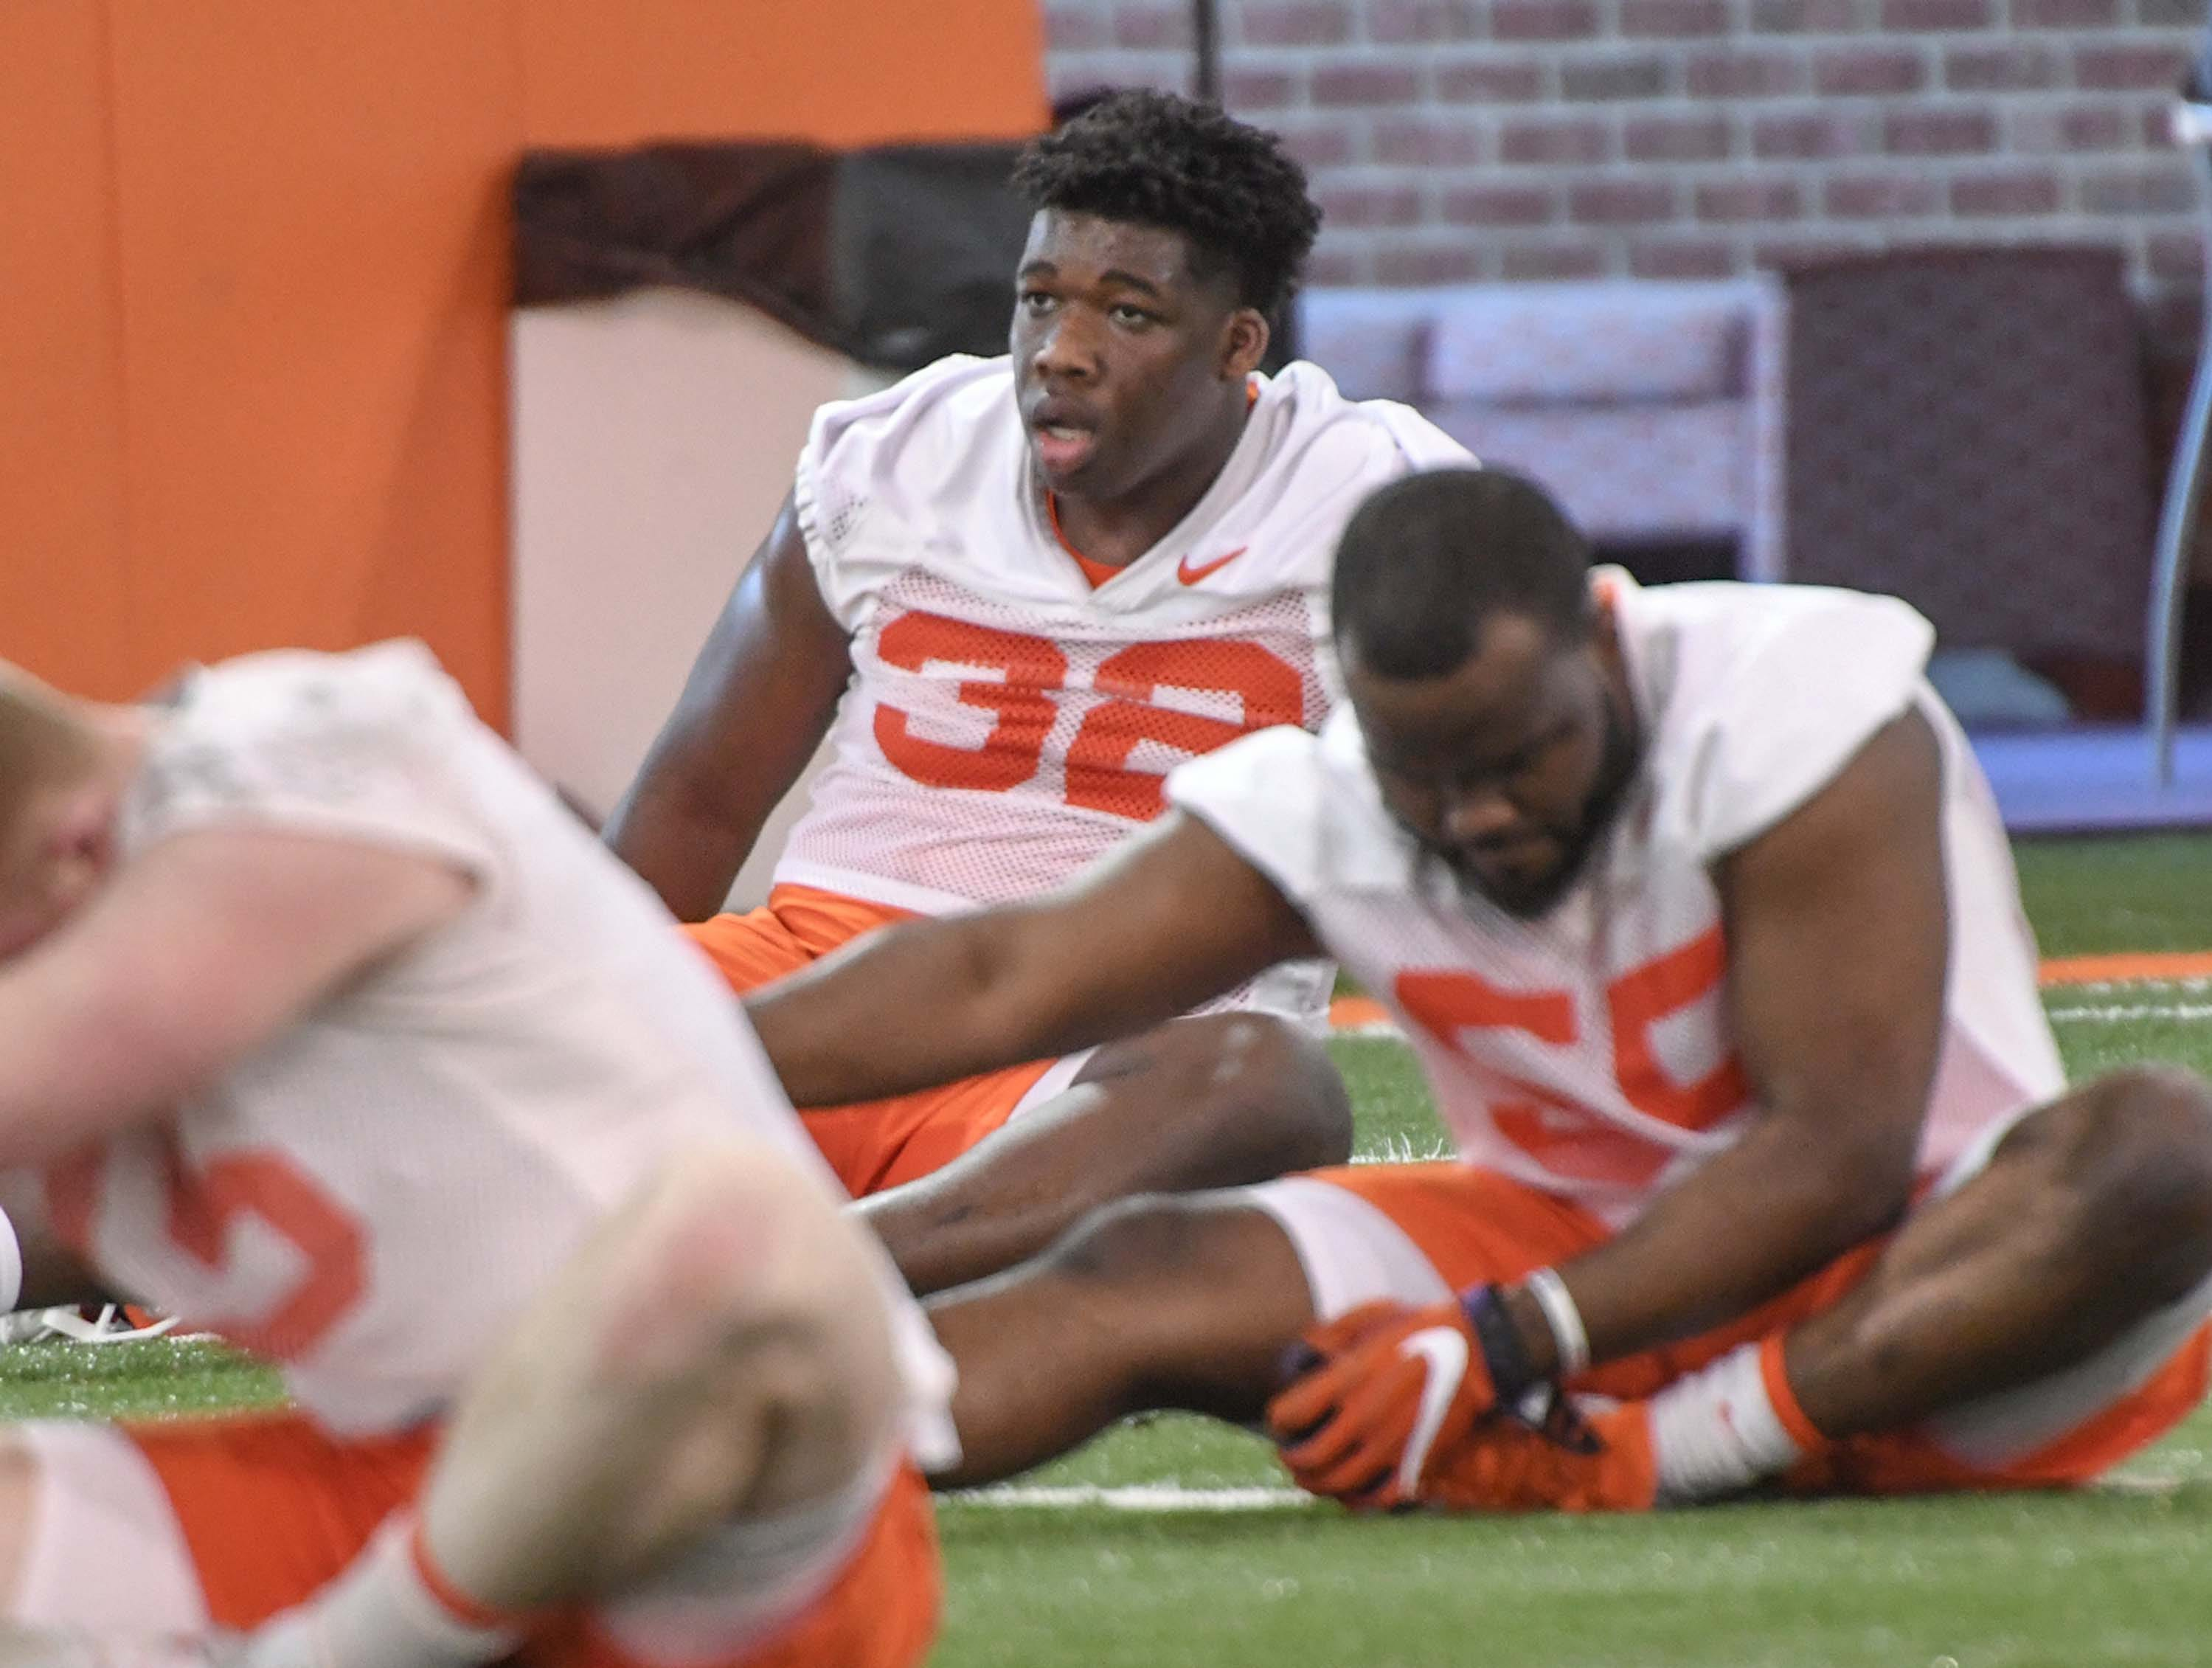 Clemson defensive lineman Etinosa Reuben (32) stretches during the first practice at the Clemson Indoor Practice Facility in Clemson Wednesday, February 27, 2019.